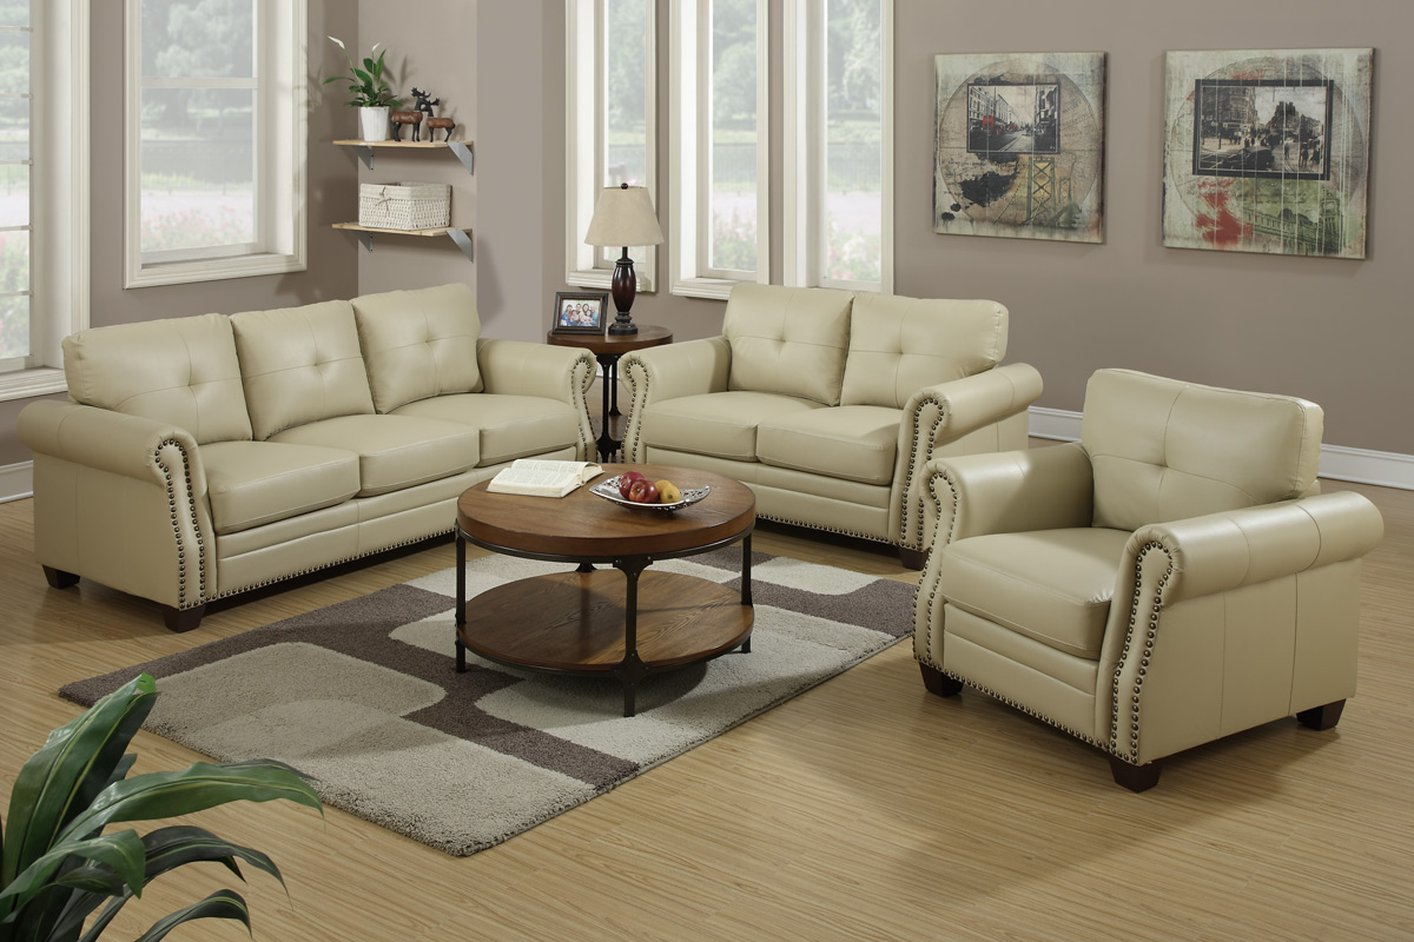 Poundex F7784 Beige Leather Sofa And Loveseat Set Steal A Sofa Furniture Outlet Los Angeles Ca